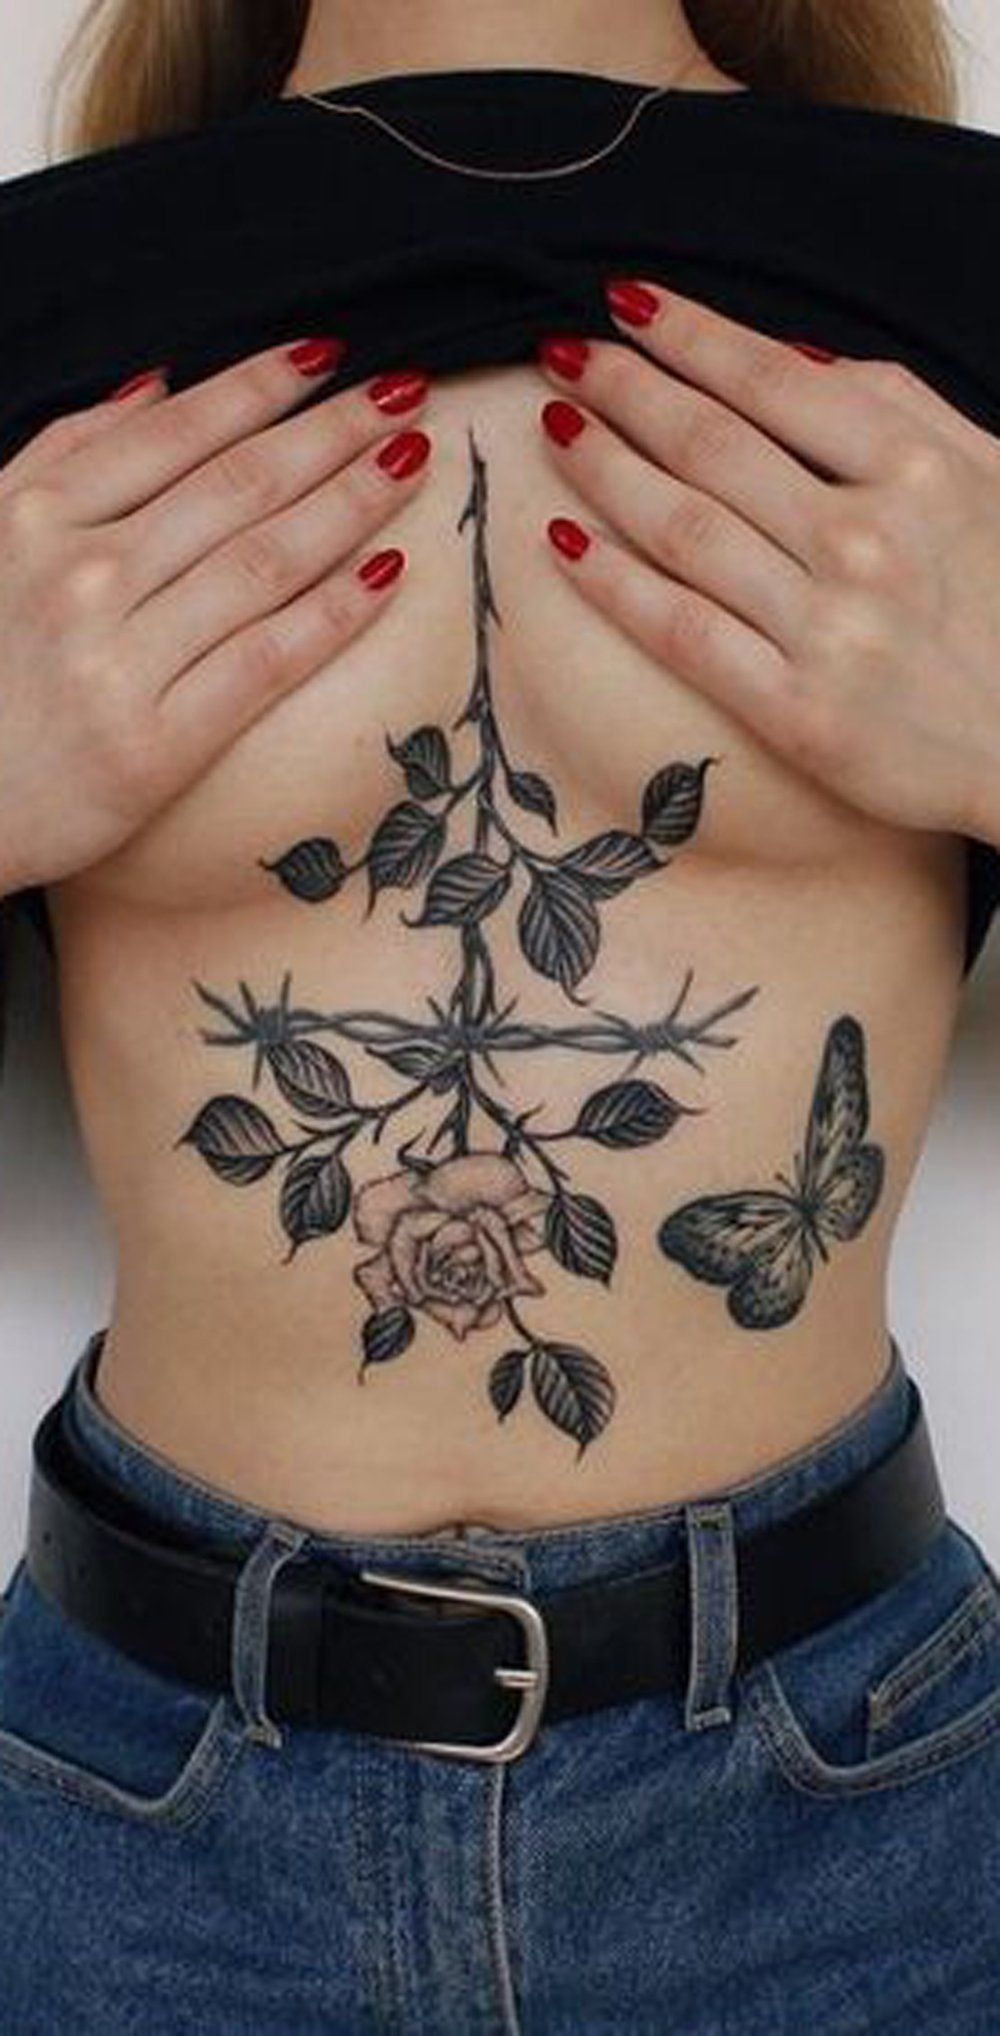 Realistic Large Rose Sternum Tattoo Ideas For Women Nature Leaf Chest Rib Tat Ideas Grandes Del Ta Chest Tattoos For Women Sternum Tattoo Tattoos For Women